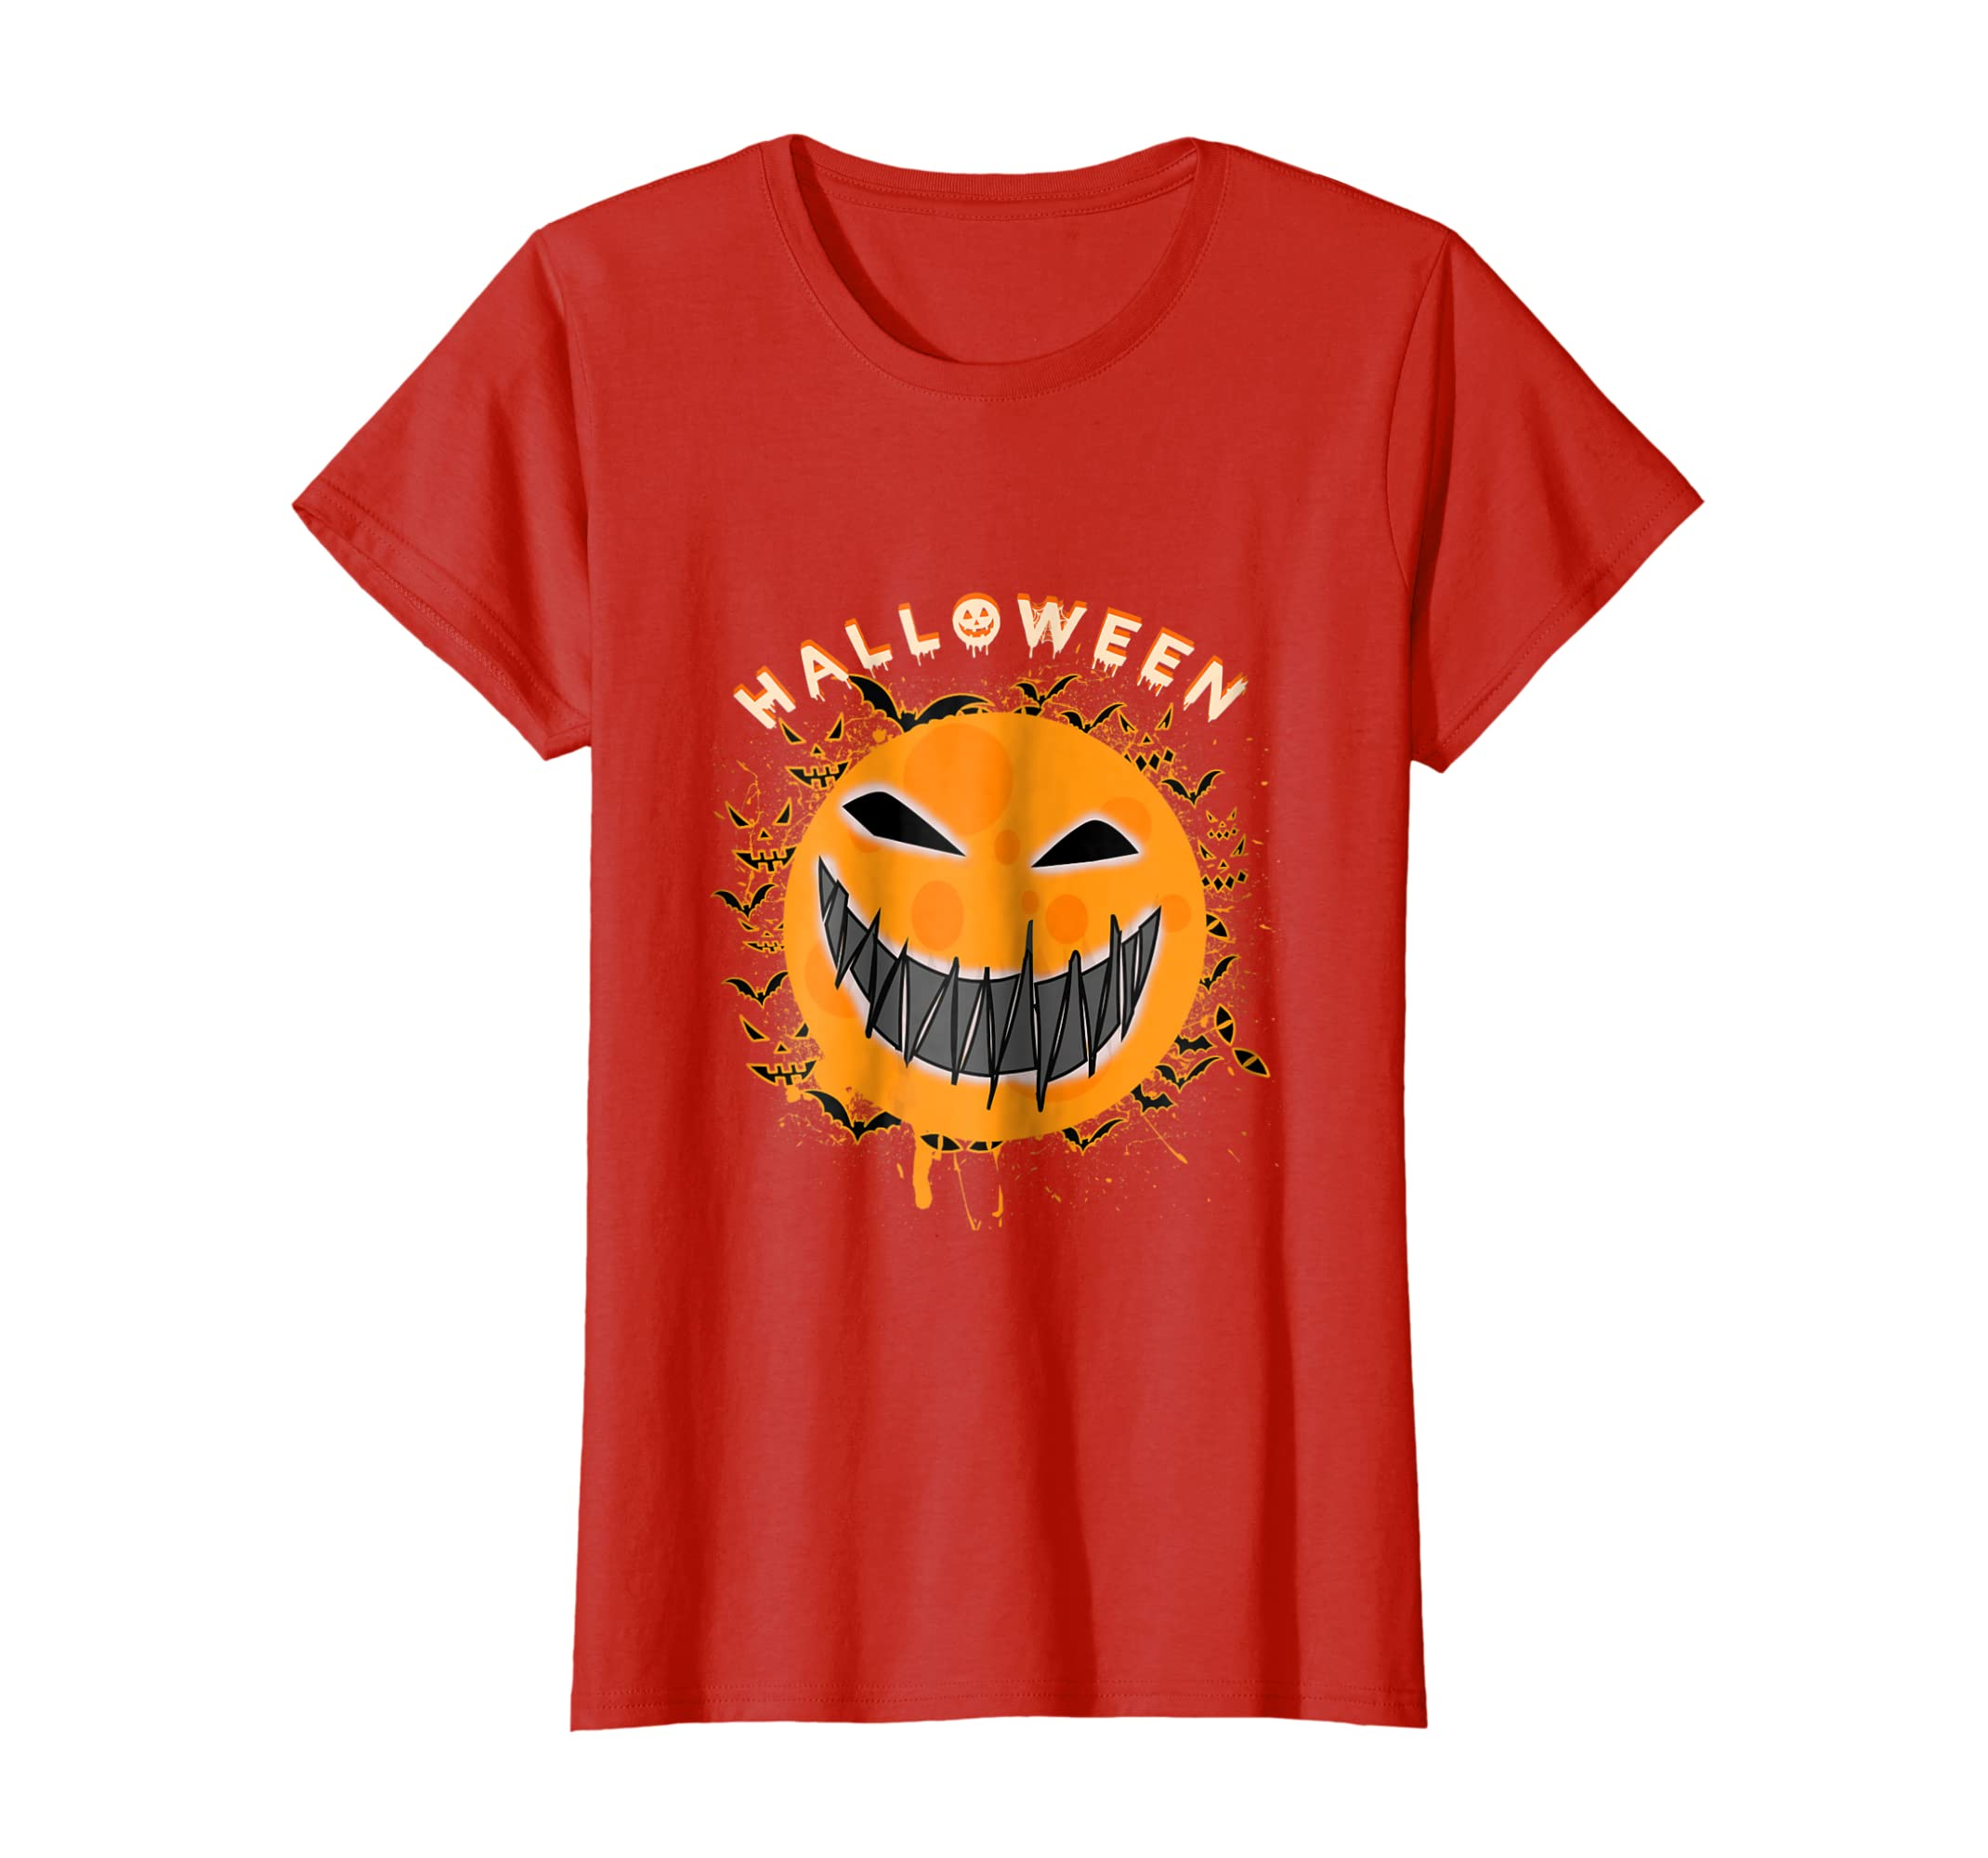 Halloween Shirt Ideas 2019.Amazon Com Halloween Witches Scary T Shirt For Men And